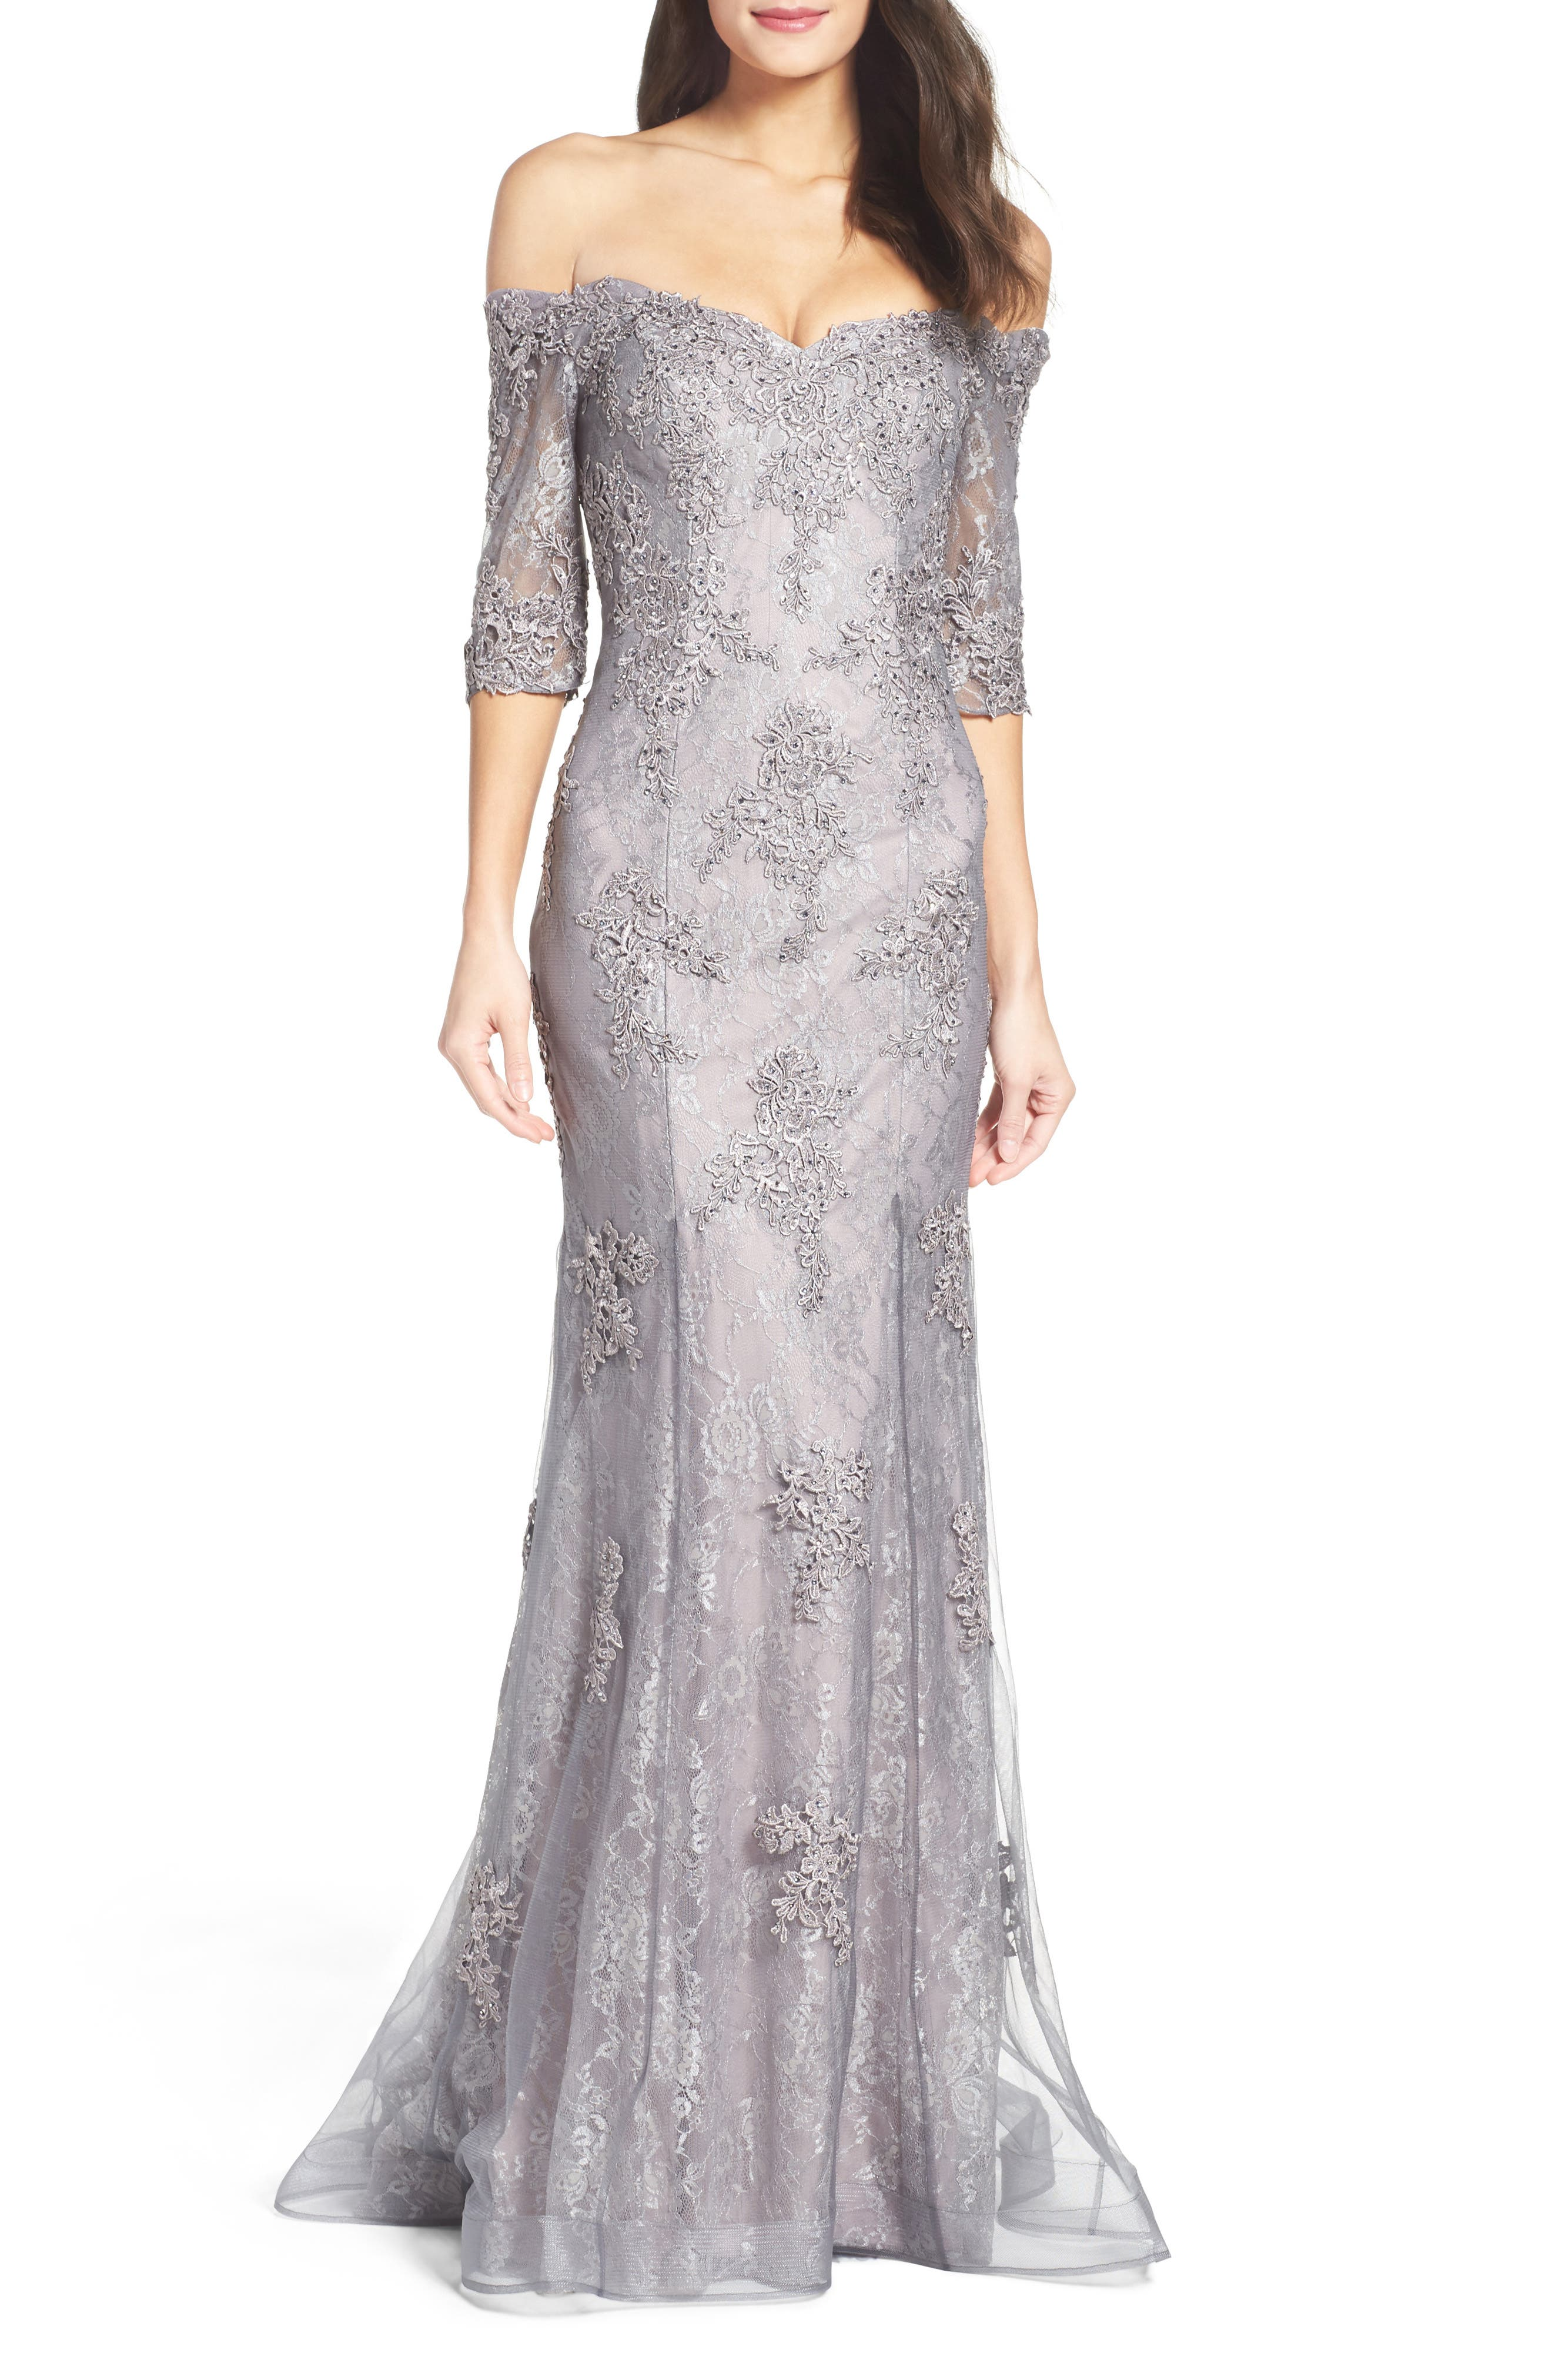 LA FEMME Fit & Flare Gown with Train, Main, color, PINK/ GRAY